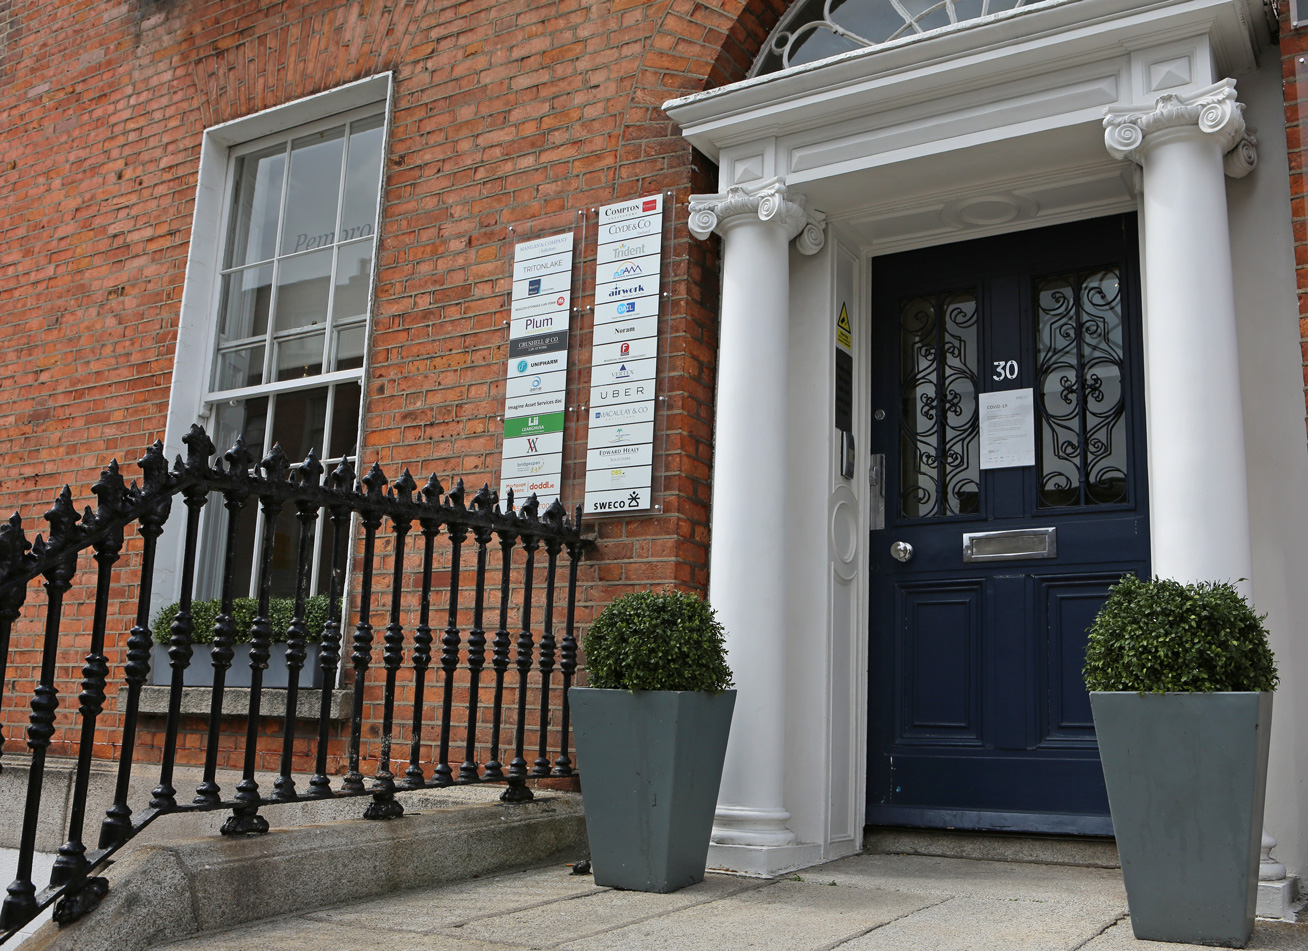 Beatty Healy Offices, 30 Pembroke Square, Dublin